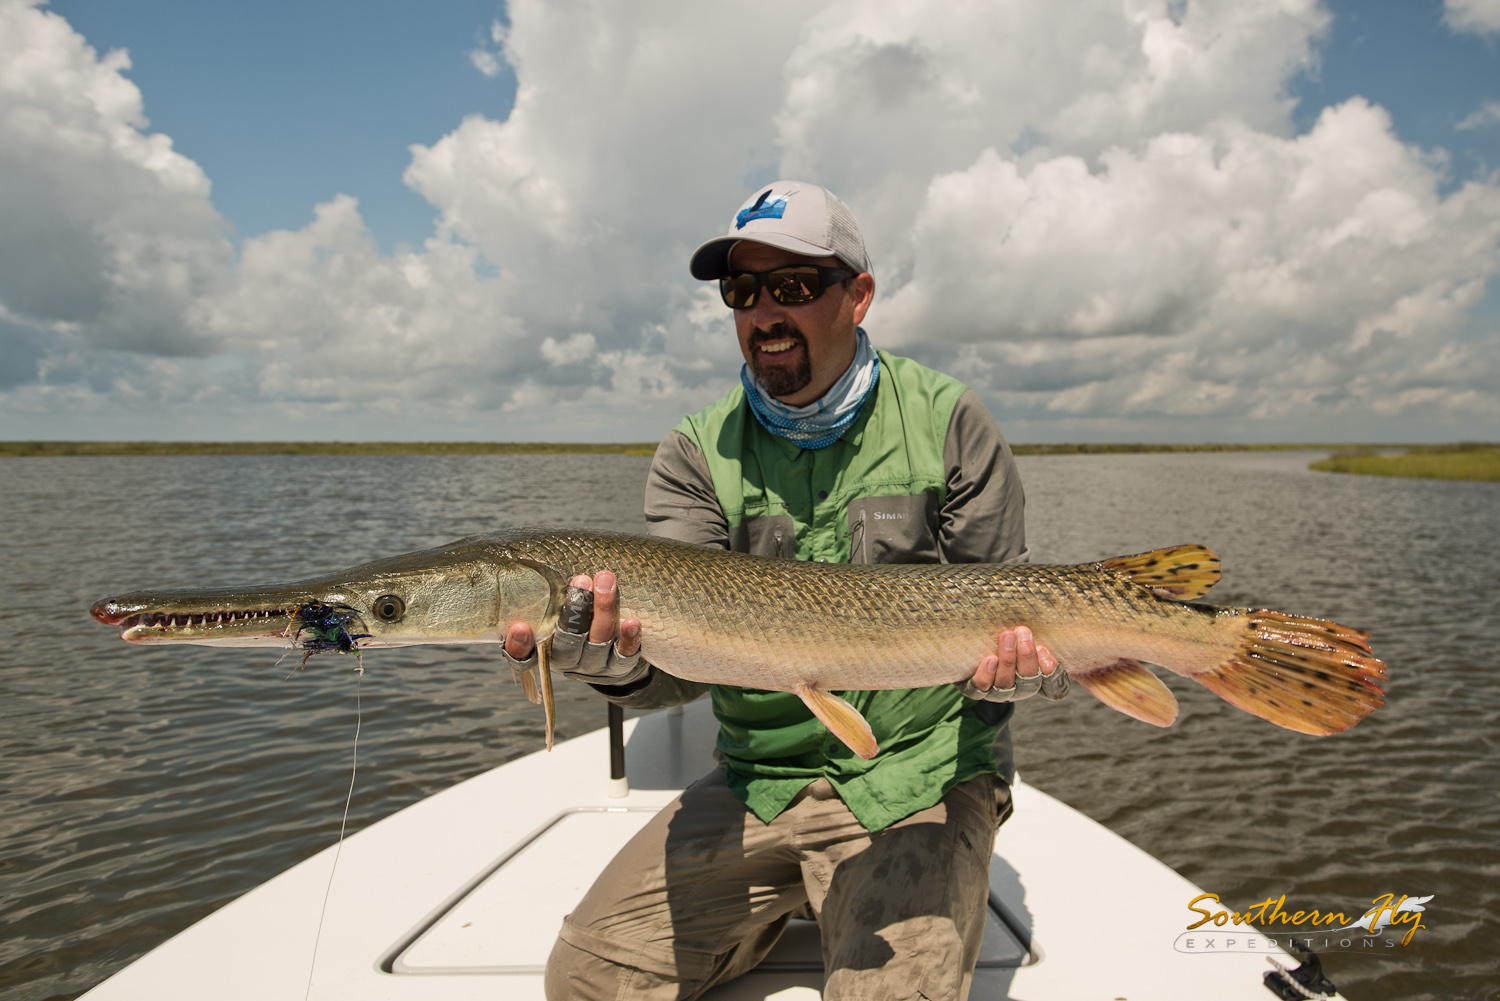 2019-06-29-07-01_SouthernFlyExpeditions_NewOrleans_DanWilcoxAndBrentByquist_Yellowdog-2.jpg